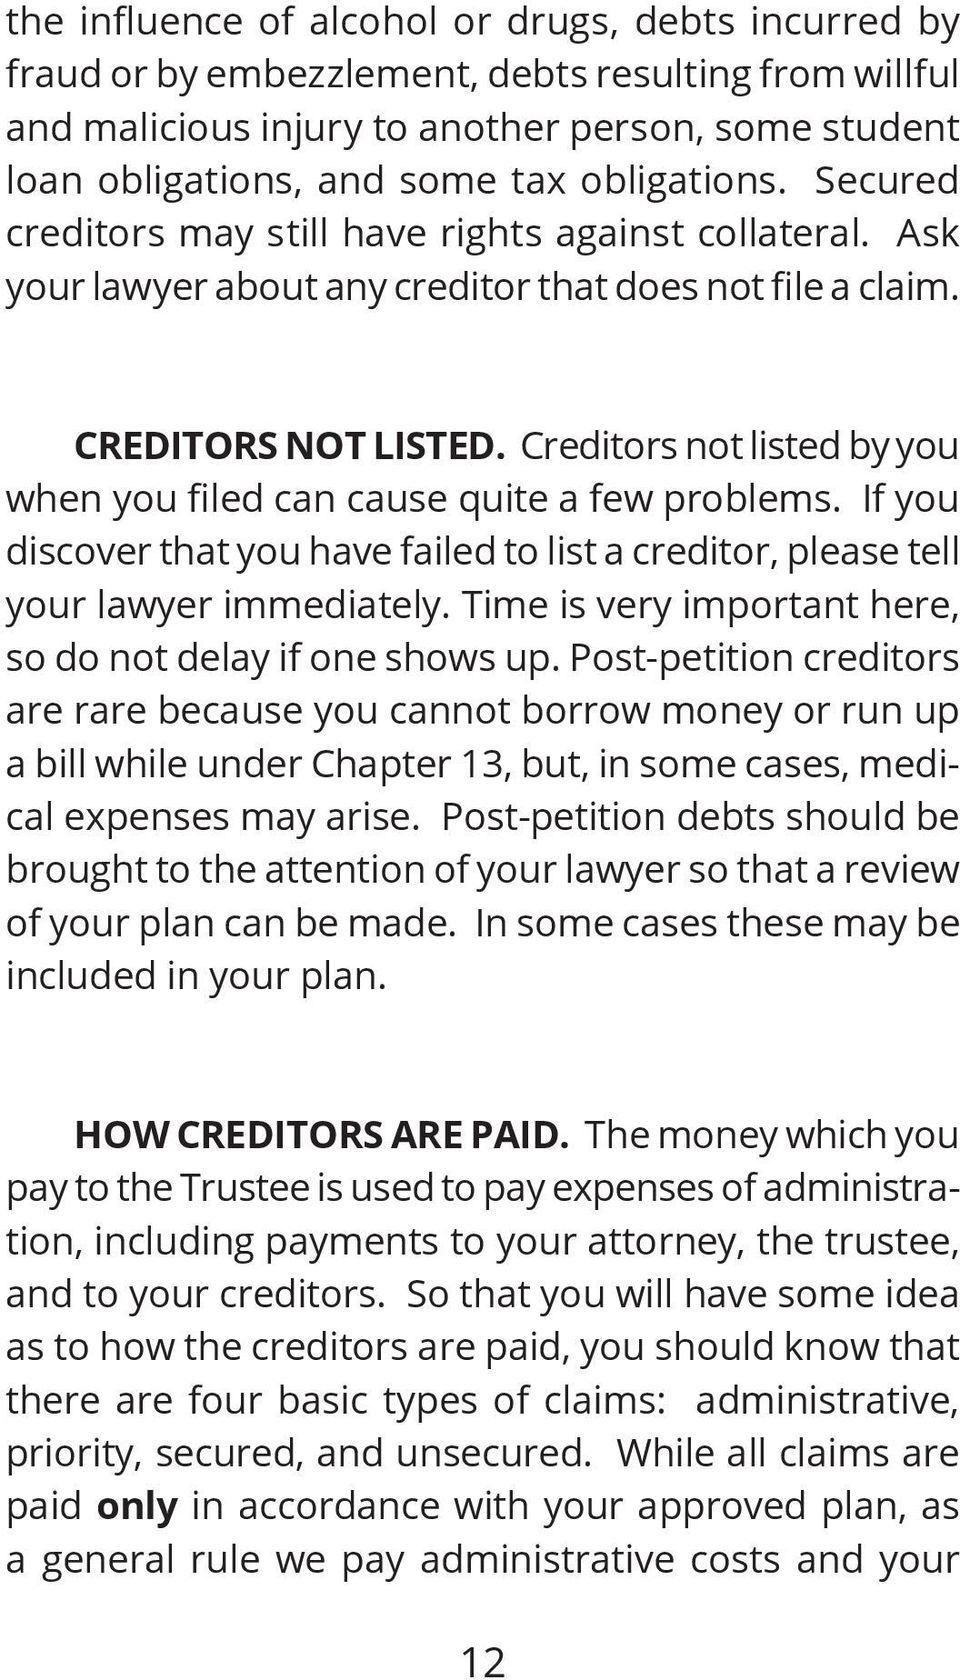 Creditors not listed by you when you filed can cause quite a few problems. If you discover that you have failed to list a creditor, please tell your lawyer immediately.